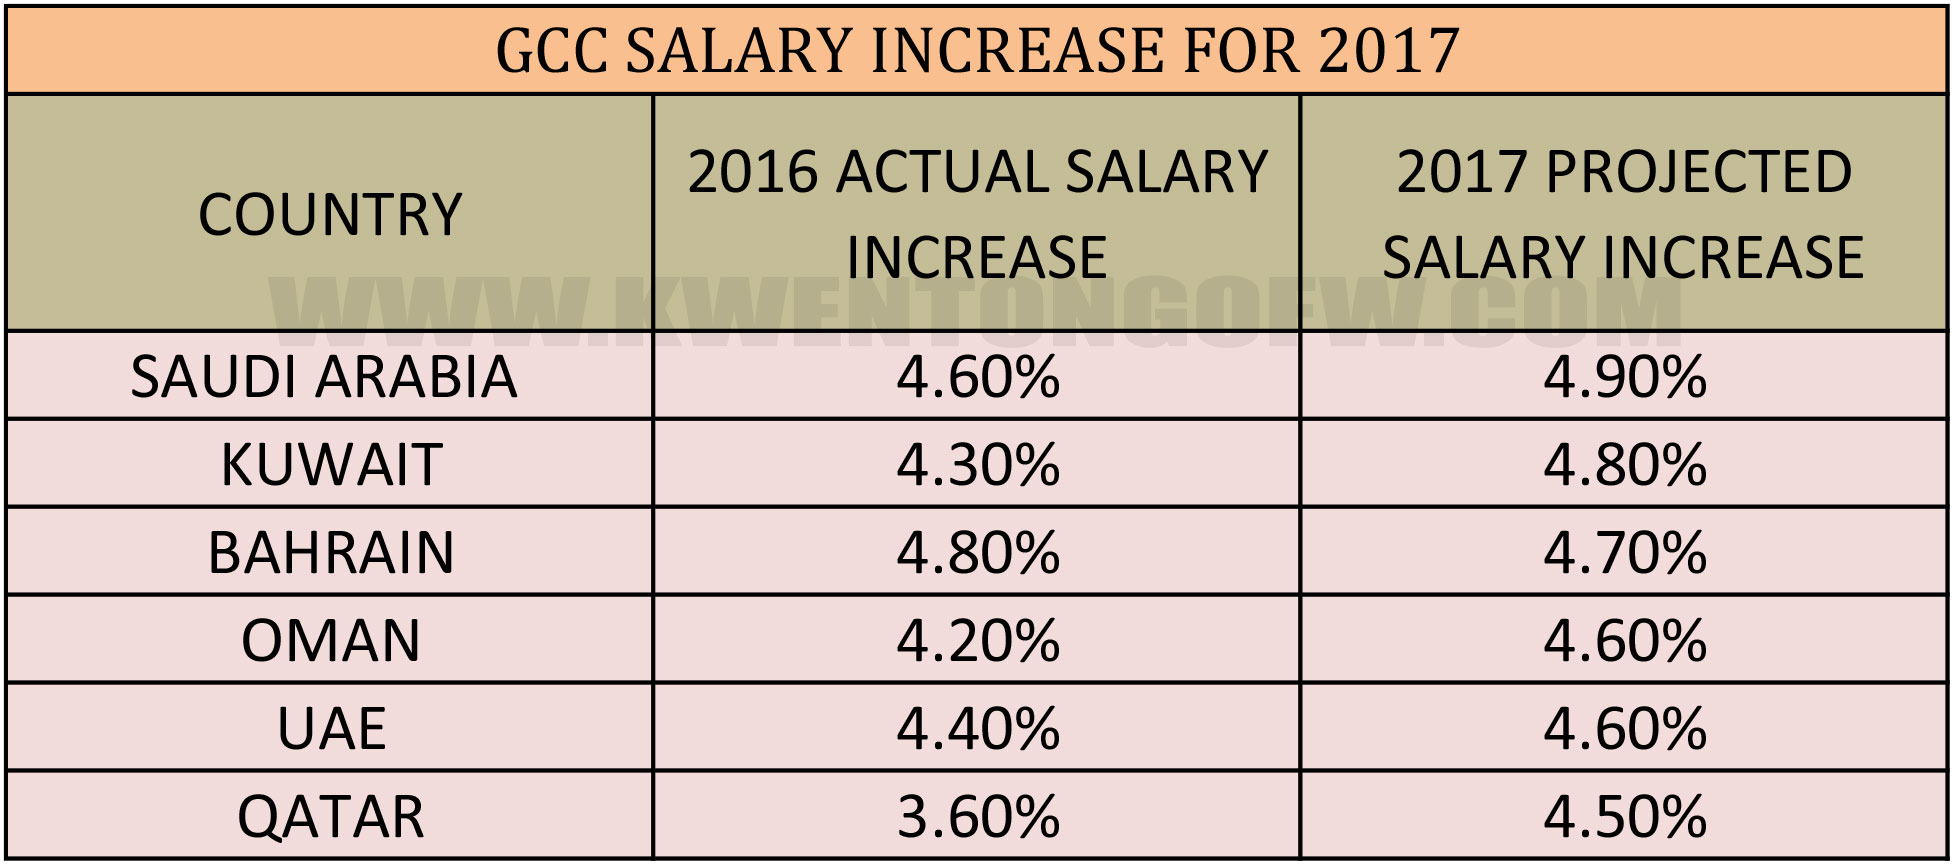 salary increase for uae ksa and qatar expected next salary increase gcc